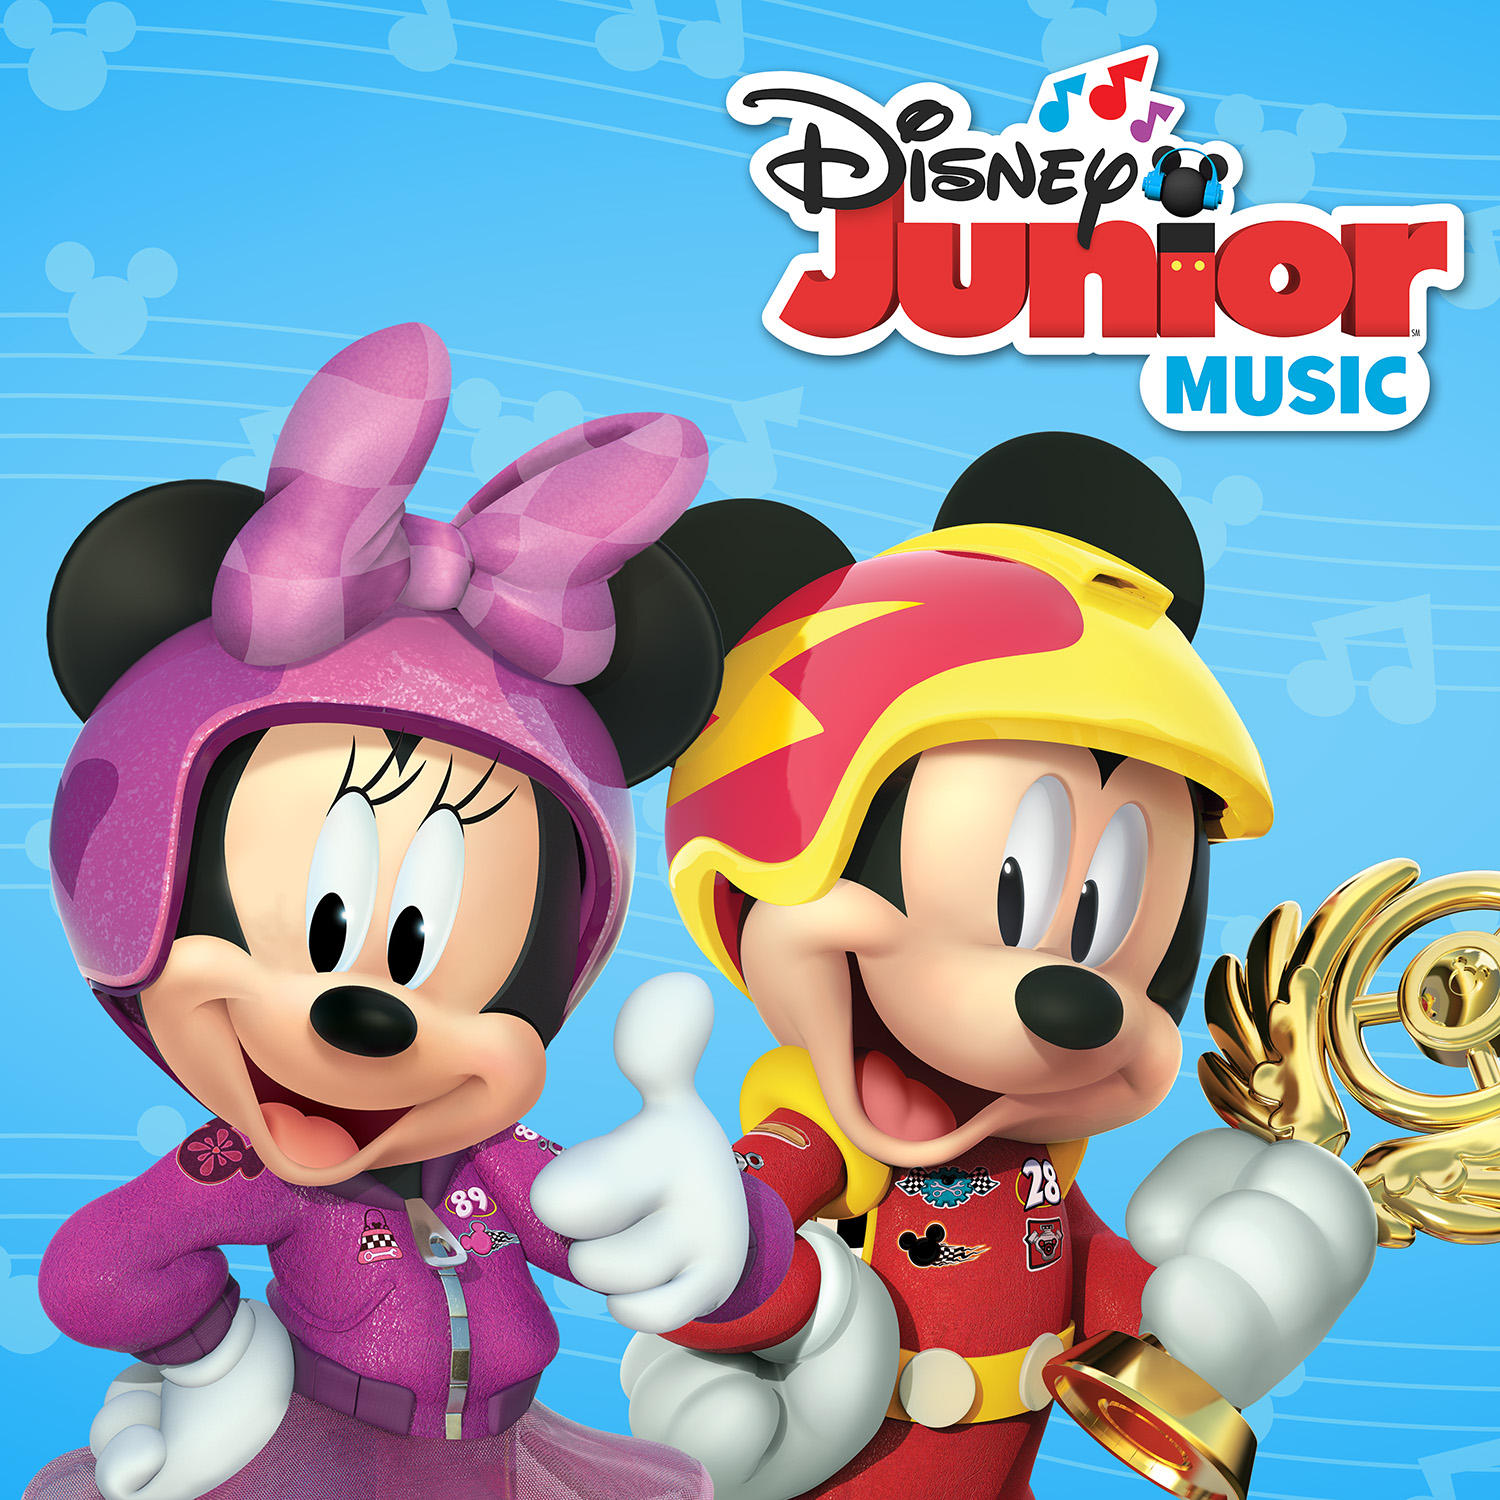 Disney Junior Music Radio Station Launches On Apple Music